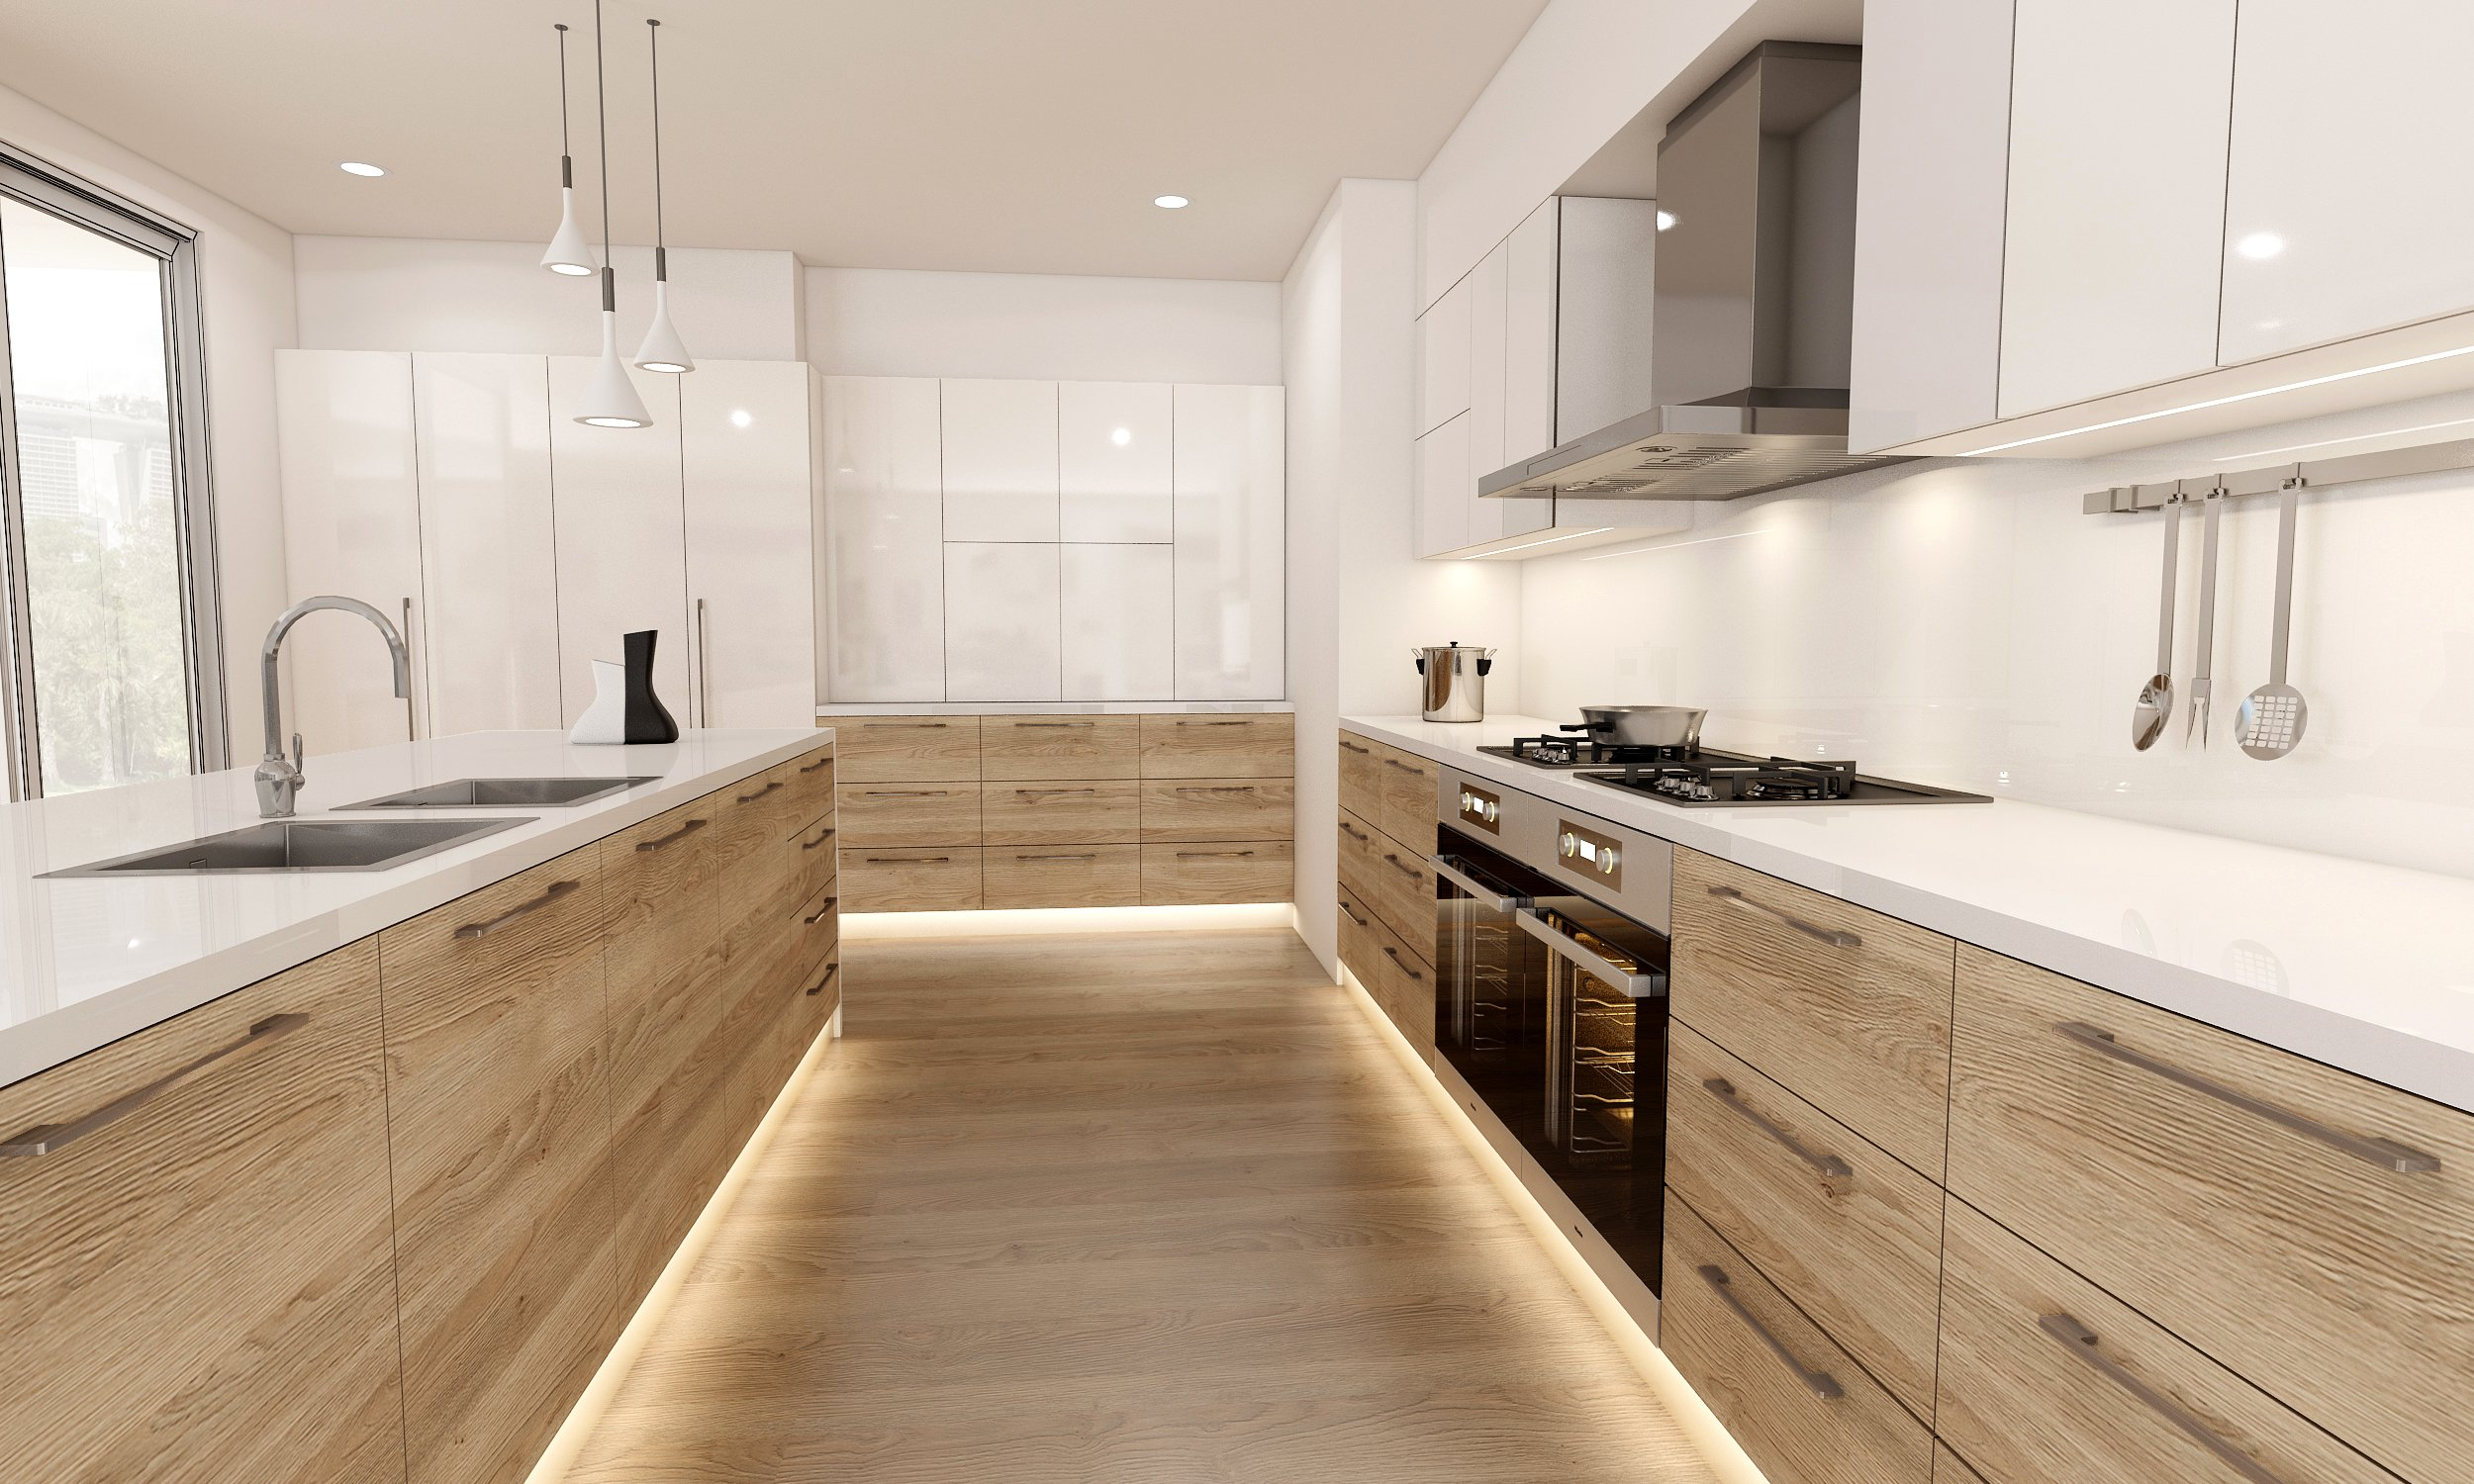 Wooden Fitted Kitchens of Wood Grain Light Walnut With Lacquered White Matt